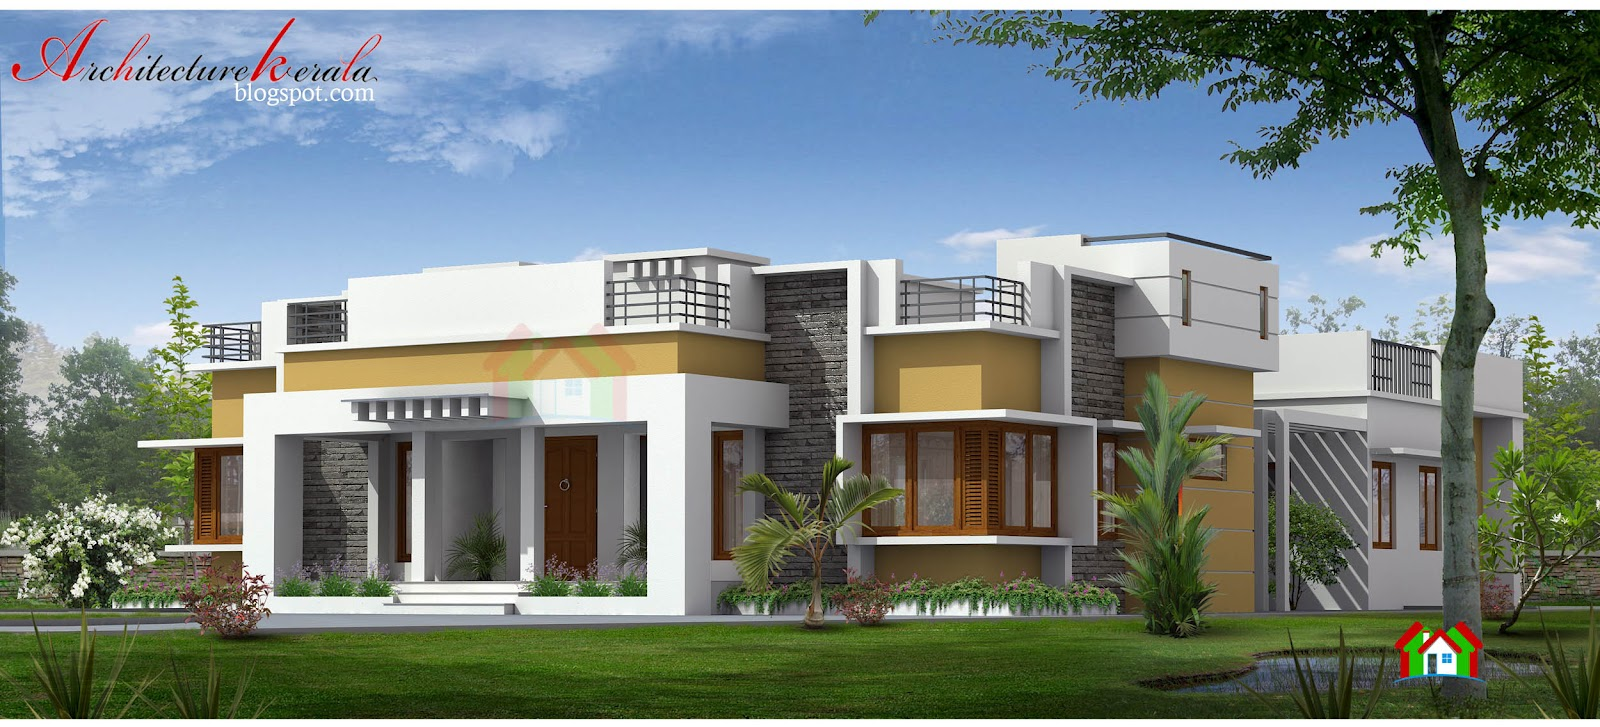 Architecture Kerala 5 Bedroom Big Kerala House Elevation